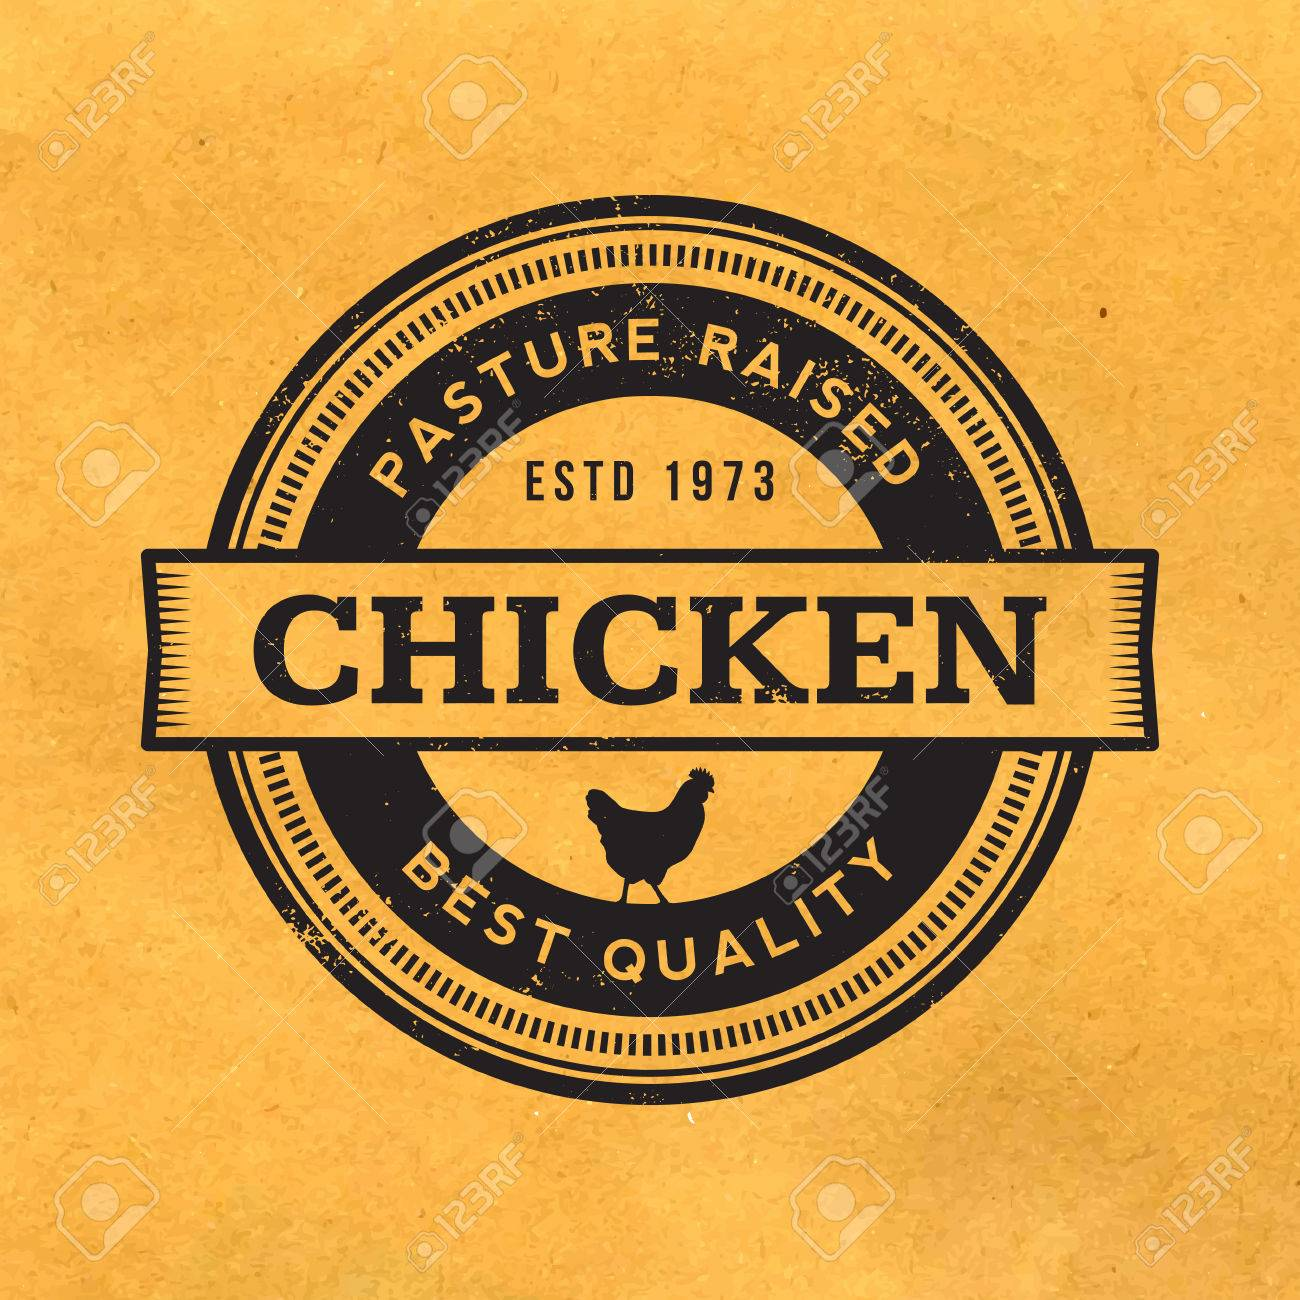 premium chicken meat label with grunge texture on old paper background - 42863234